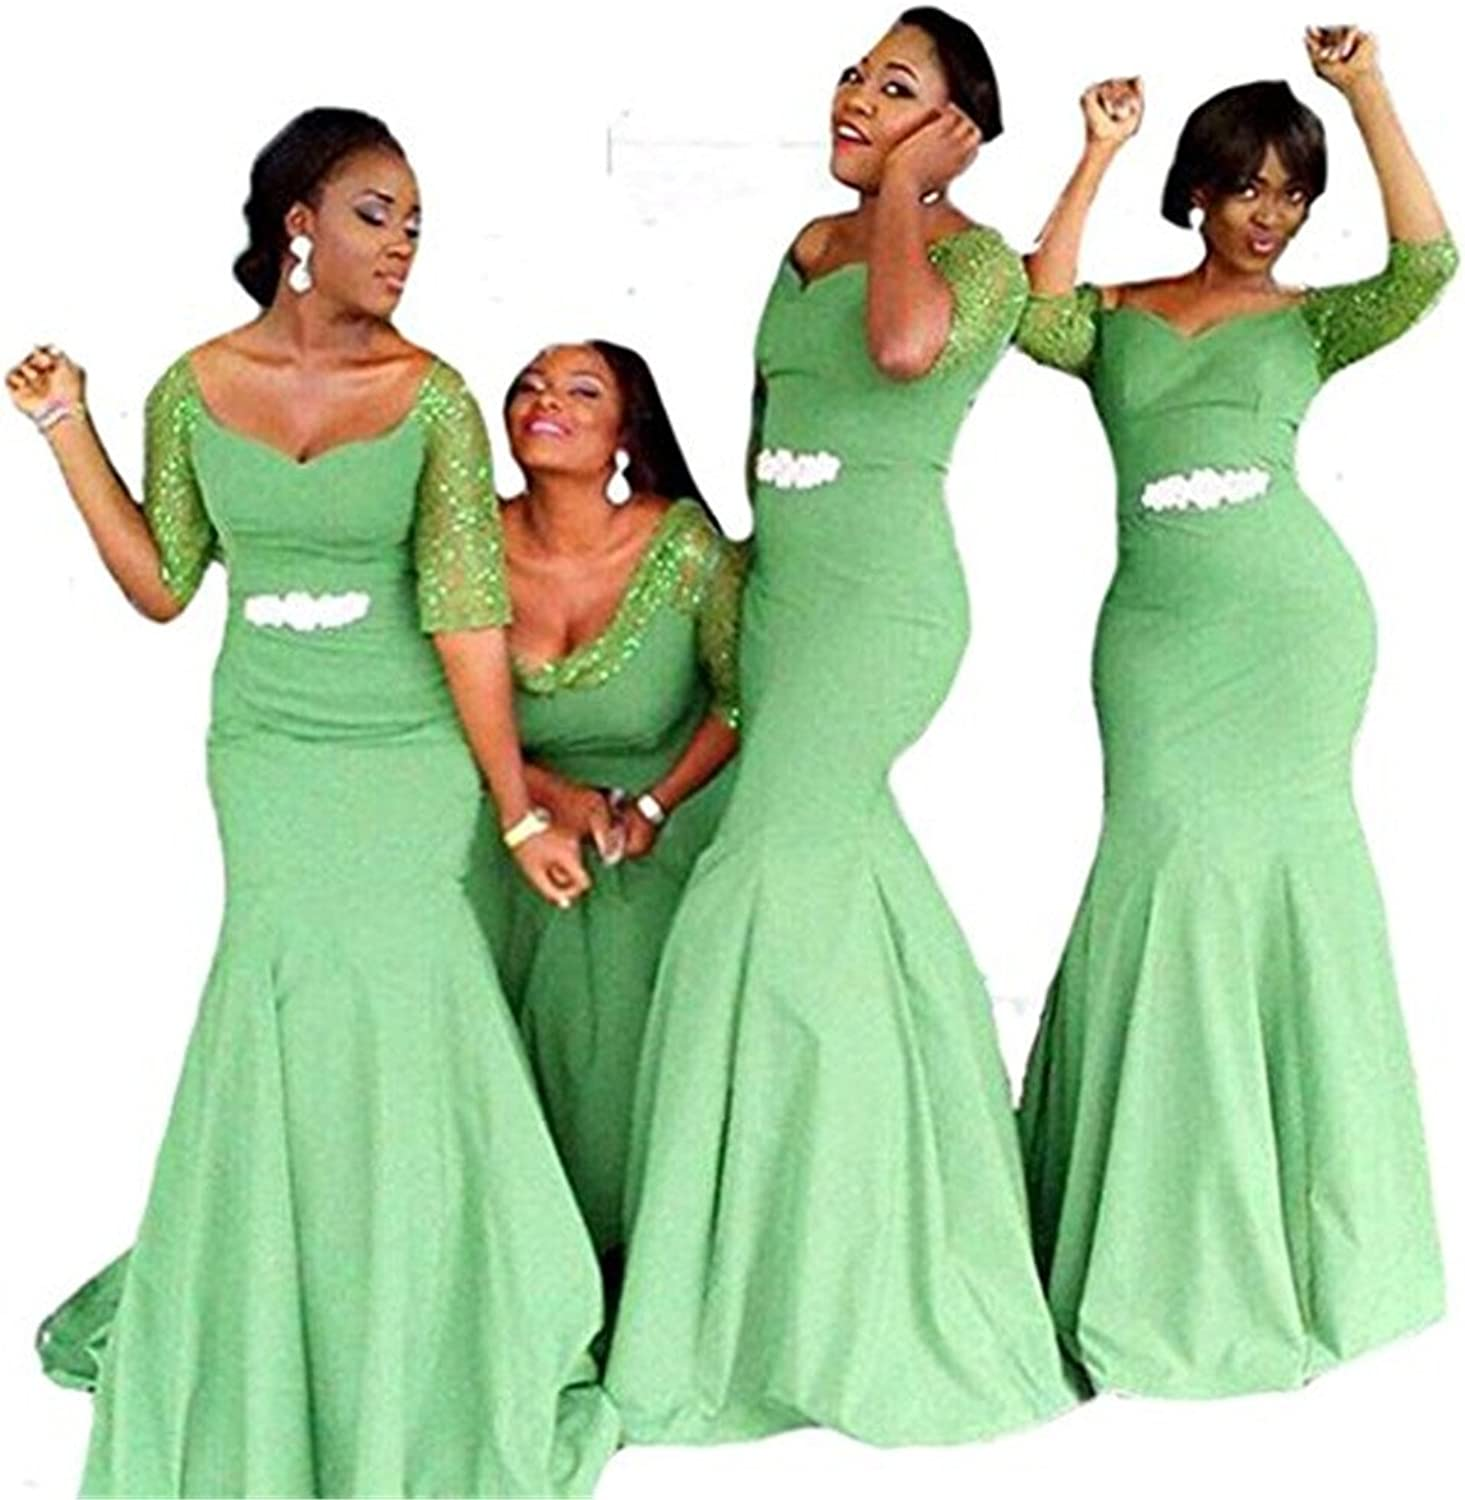 Chenghouse Mermaid Bridesmaid Dresses Half Sleeves Prom Party Gowns